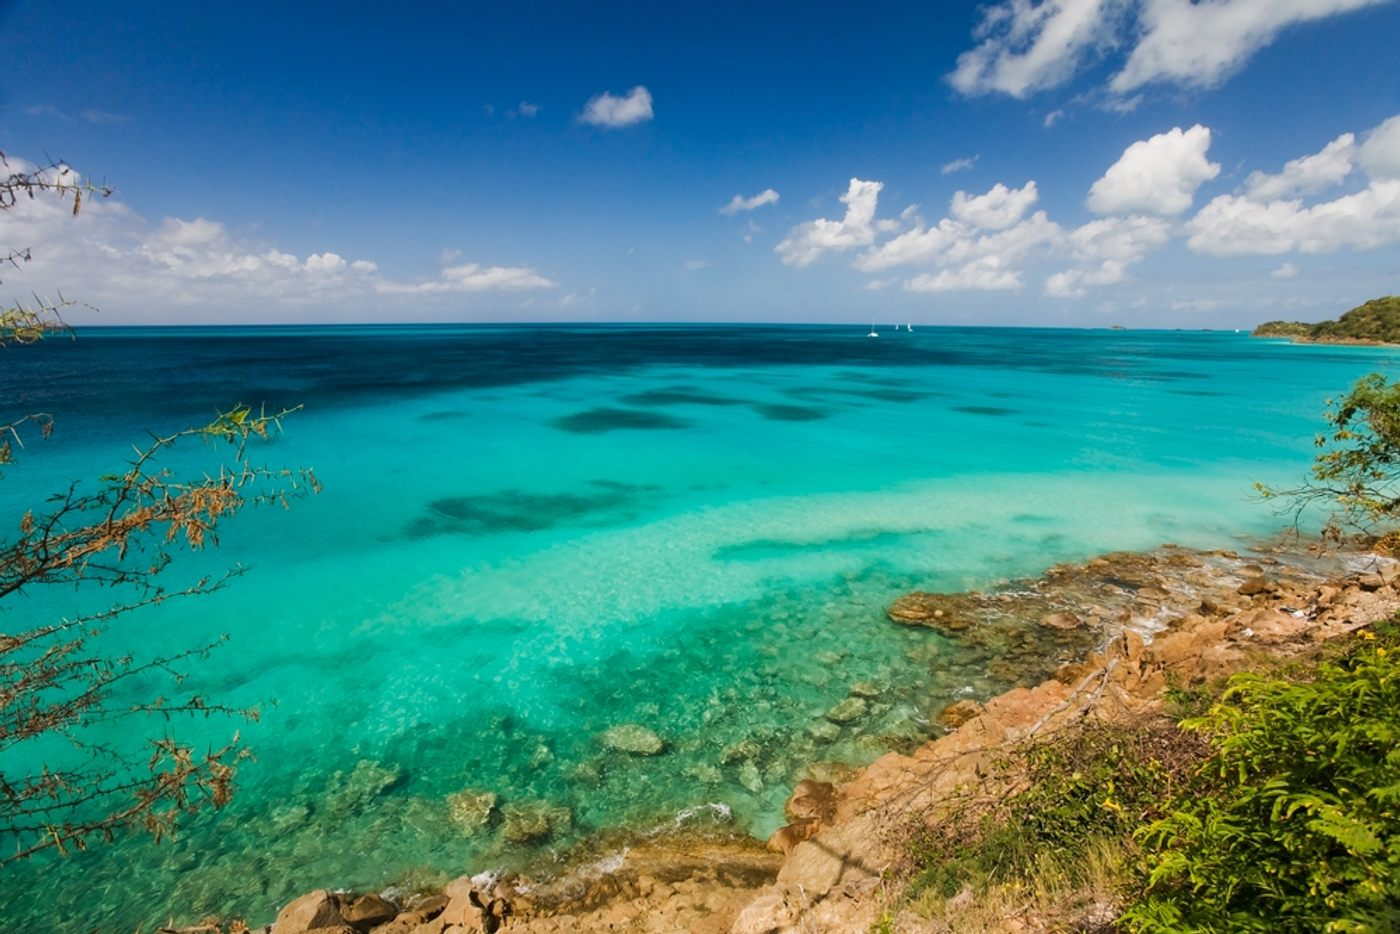 view from cannon at british fort at nelson's dockyard national park on our antigua yacht charter trip